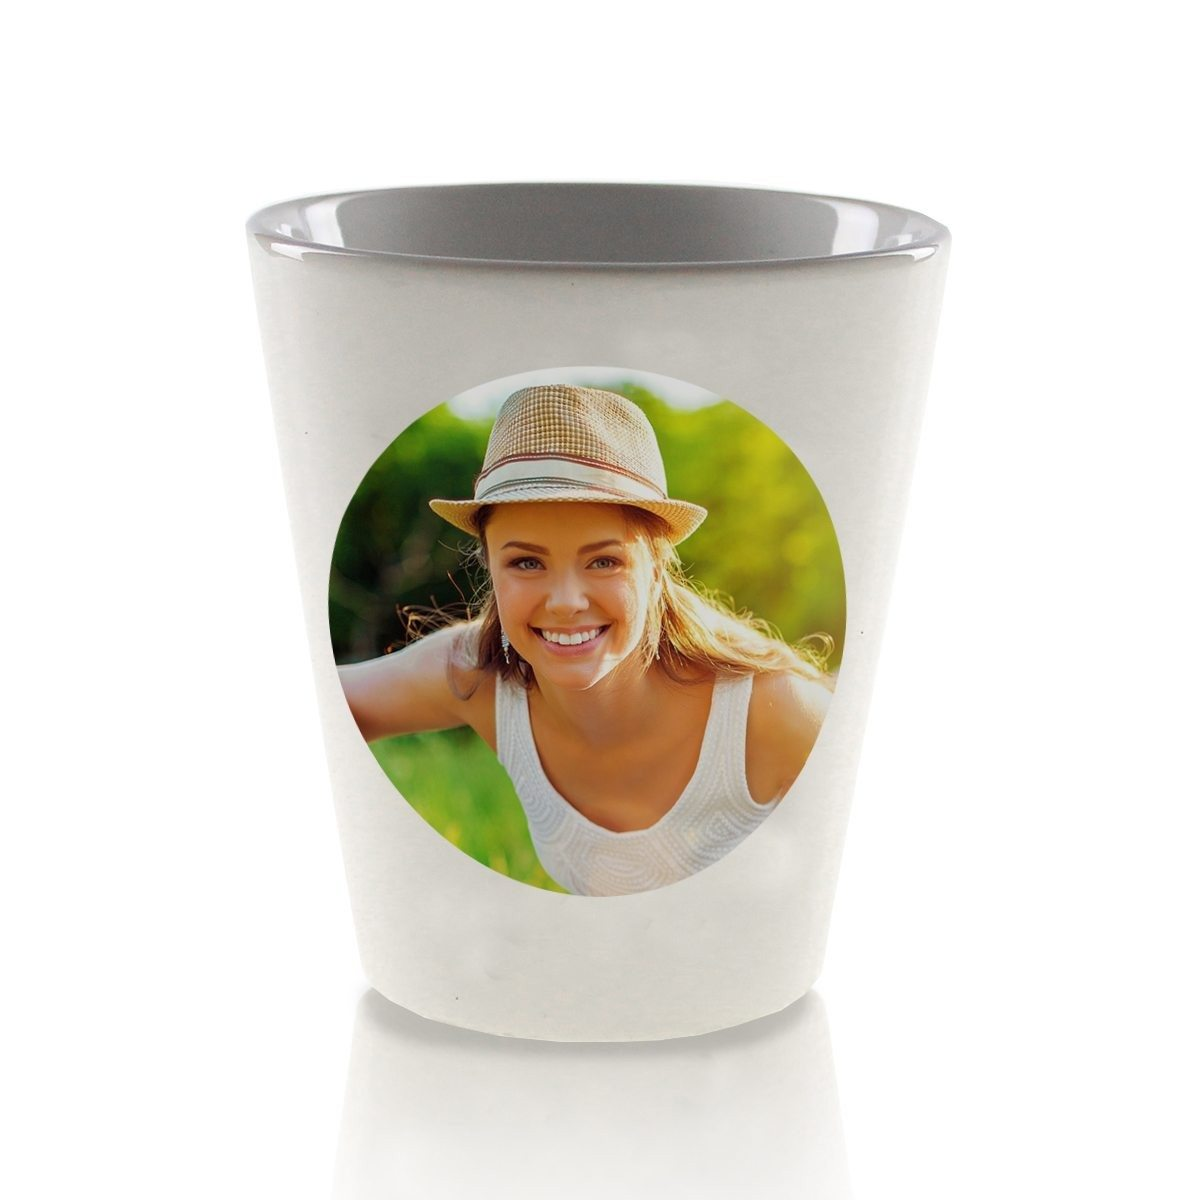 SMALL PERSONALIZED FLOWER POT